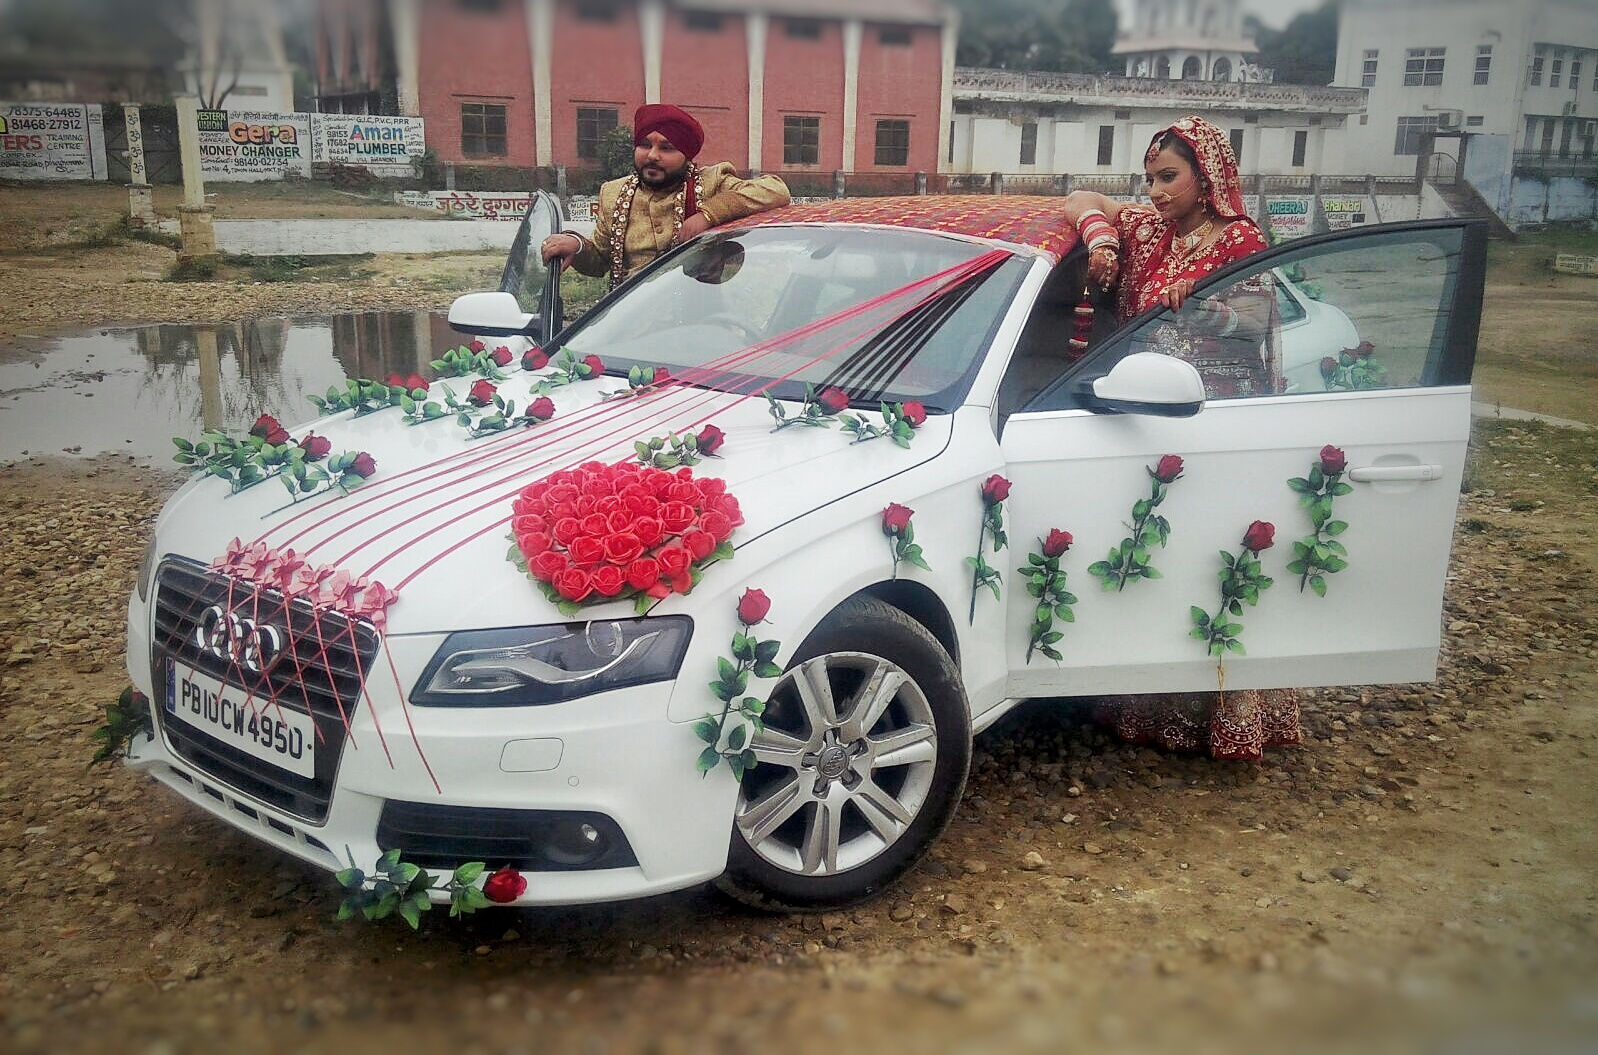 JUST MARRIED PUNEET BASSI weds PRABHJOT KAUR (15th Jan 2016) PUNEET BASSI weds PRABHJOT KAUR (15th Jan 2016) for wedding rental in Punjab, India